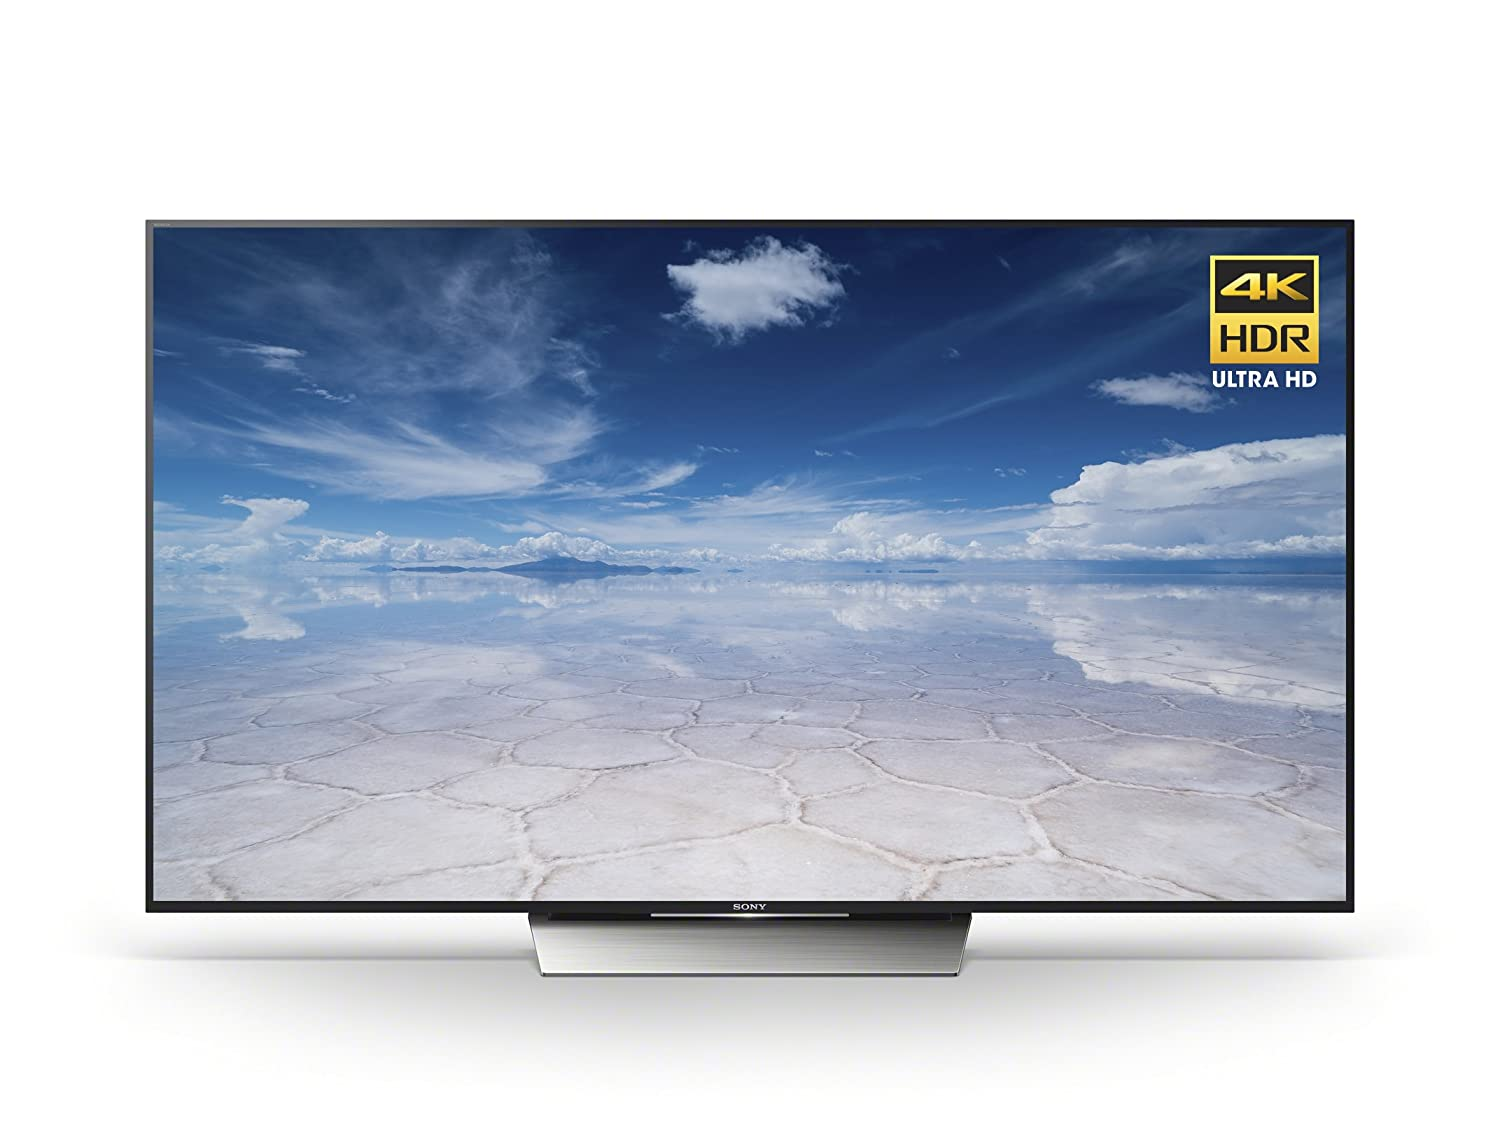 Tvs For Sale Big W Cheap 4k Tvs On Sale On Amazon Samsung And Sony Bgr